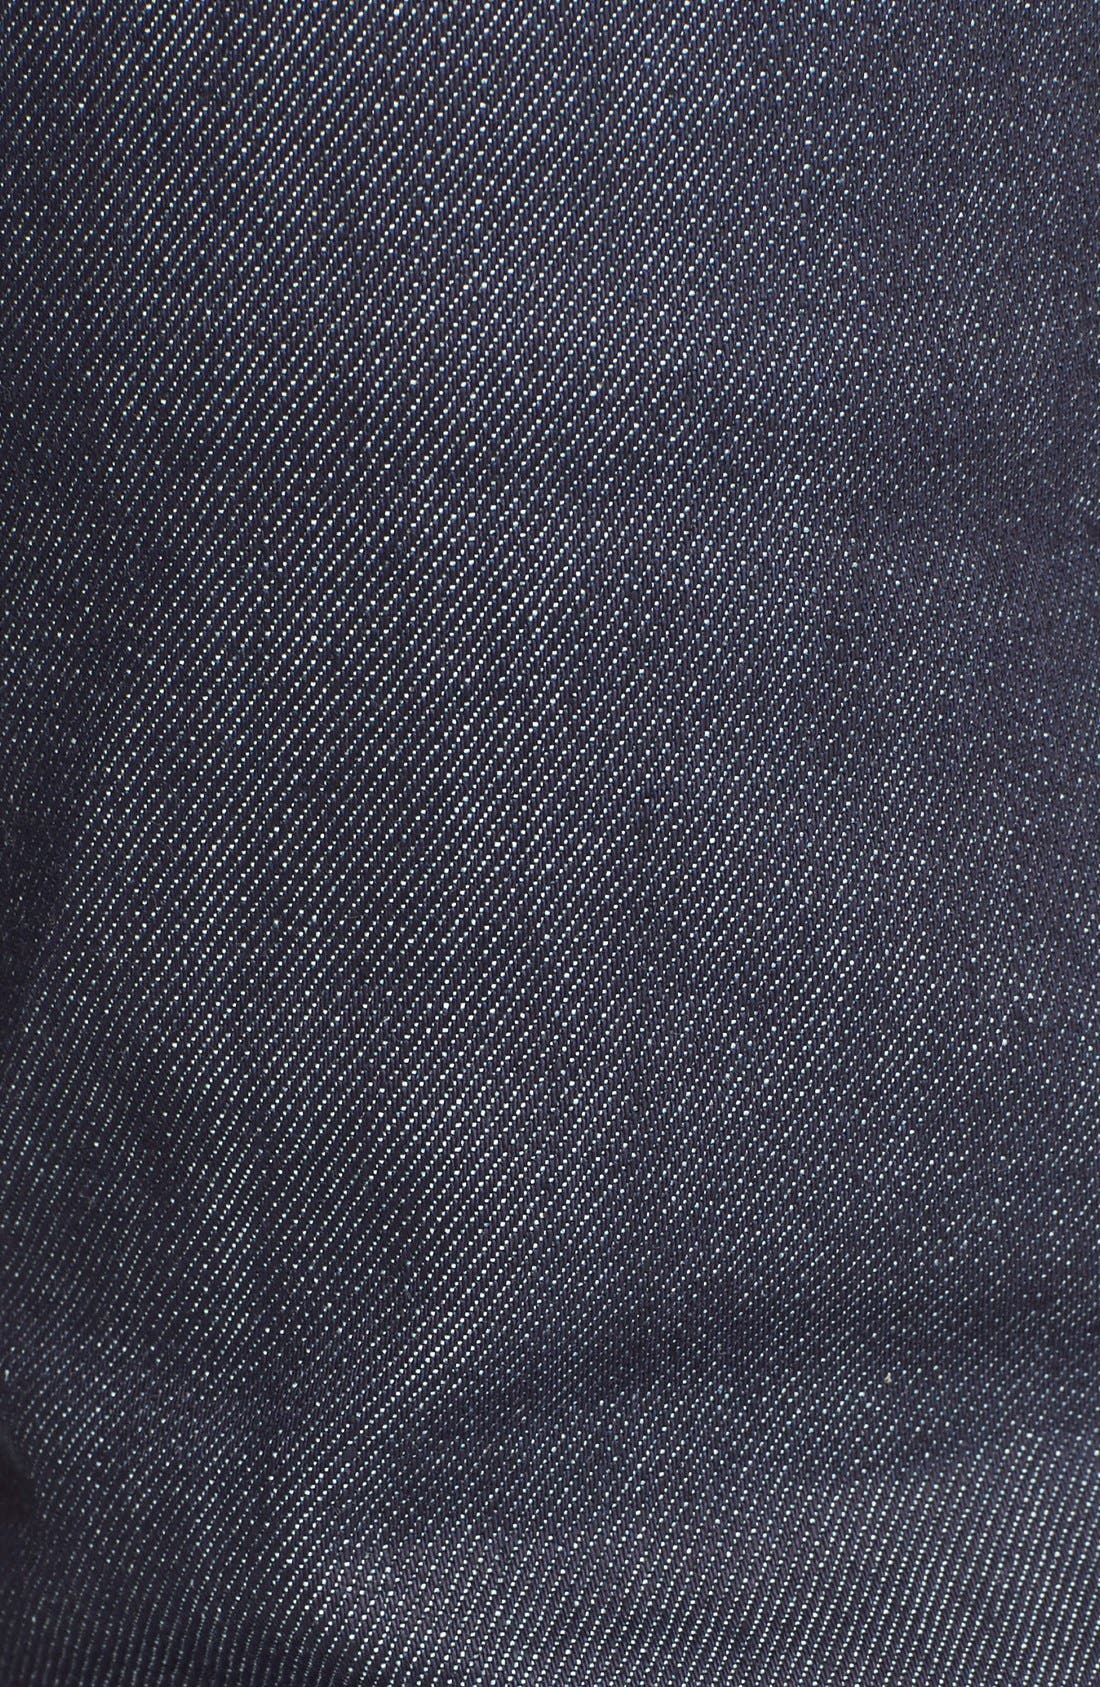 Petite New Standard Skinny Fit Jeans,                             Alternate thumbnail 5, color,                             Indigo